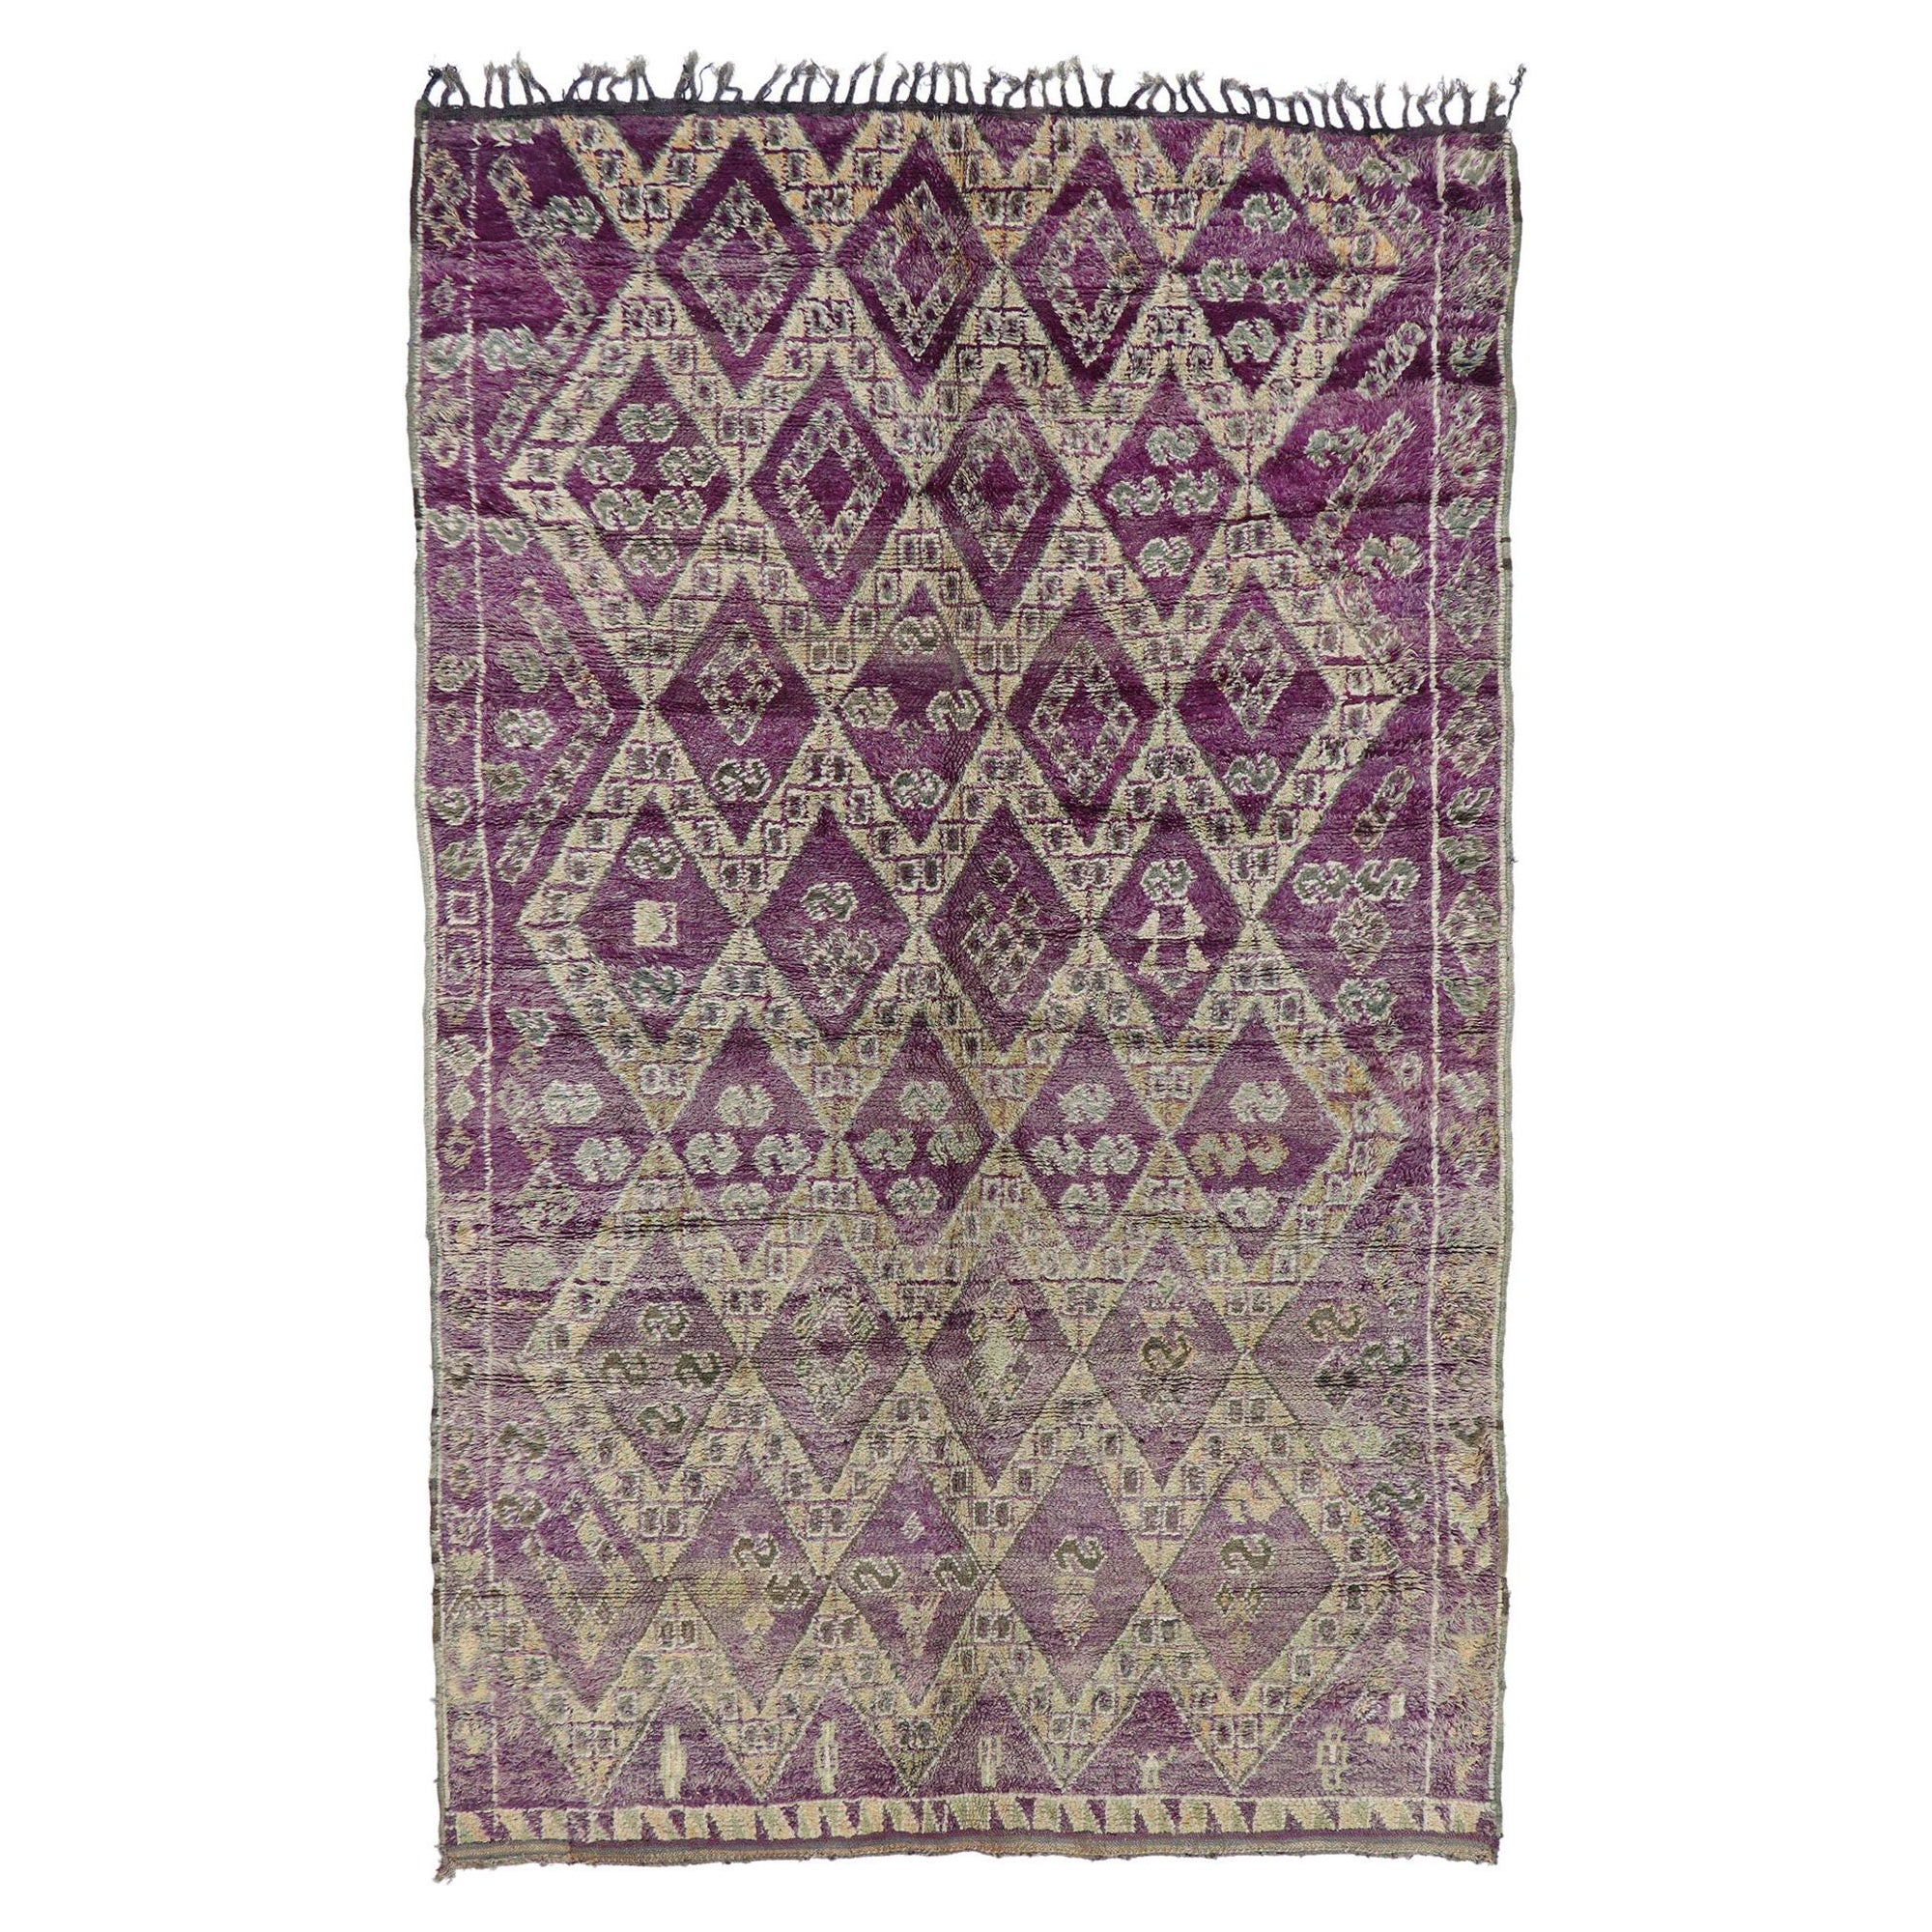 Vintage Berber Boujad Moroccan Rug with Bohemian Style